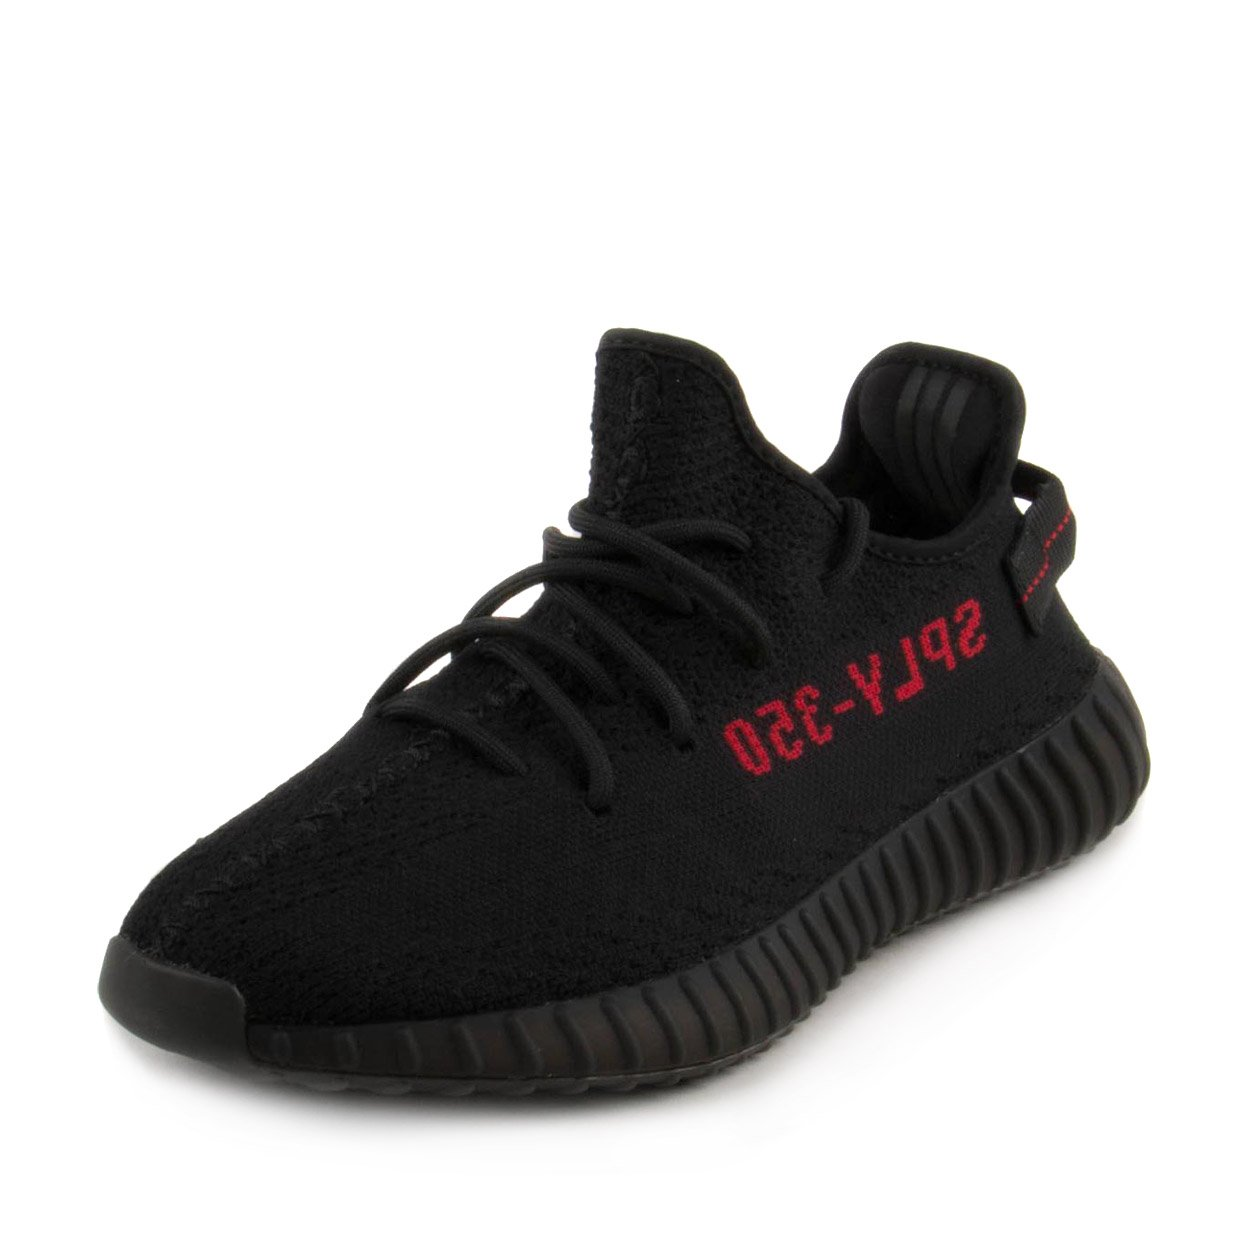 Adidas Mens Yeezy Boost 350 V2 Black/Black-Red Fabric Size 11